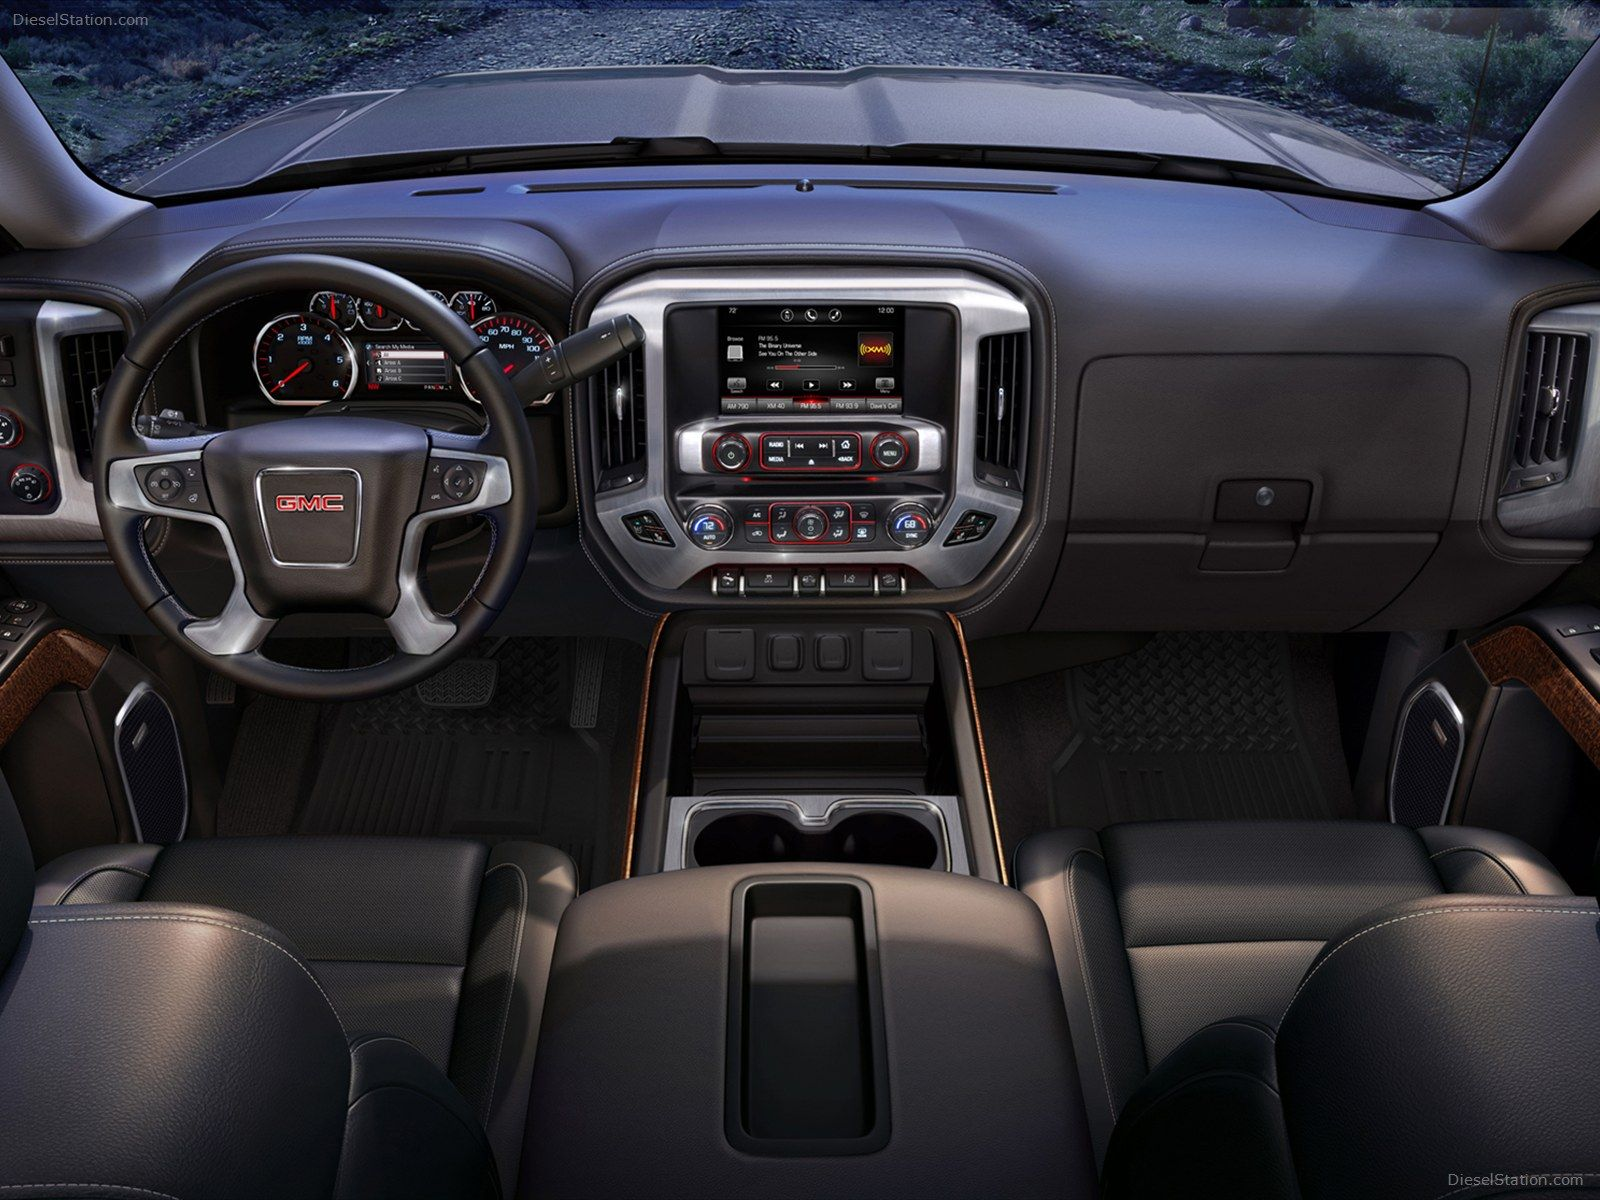 View the gallery of interior photos of the 2018 gmc sierra 1500 light duty pickup truck s premium and refined interior